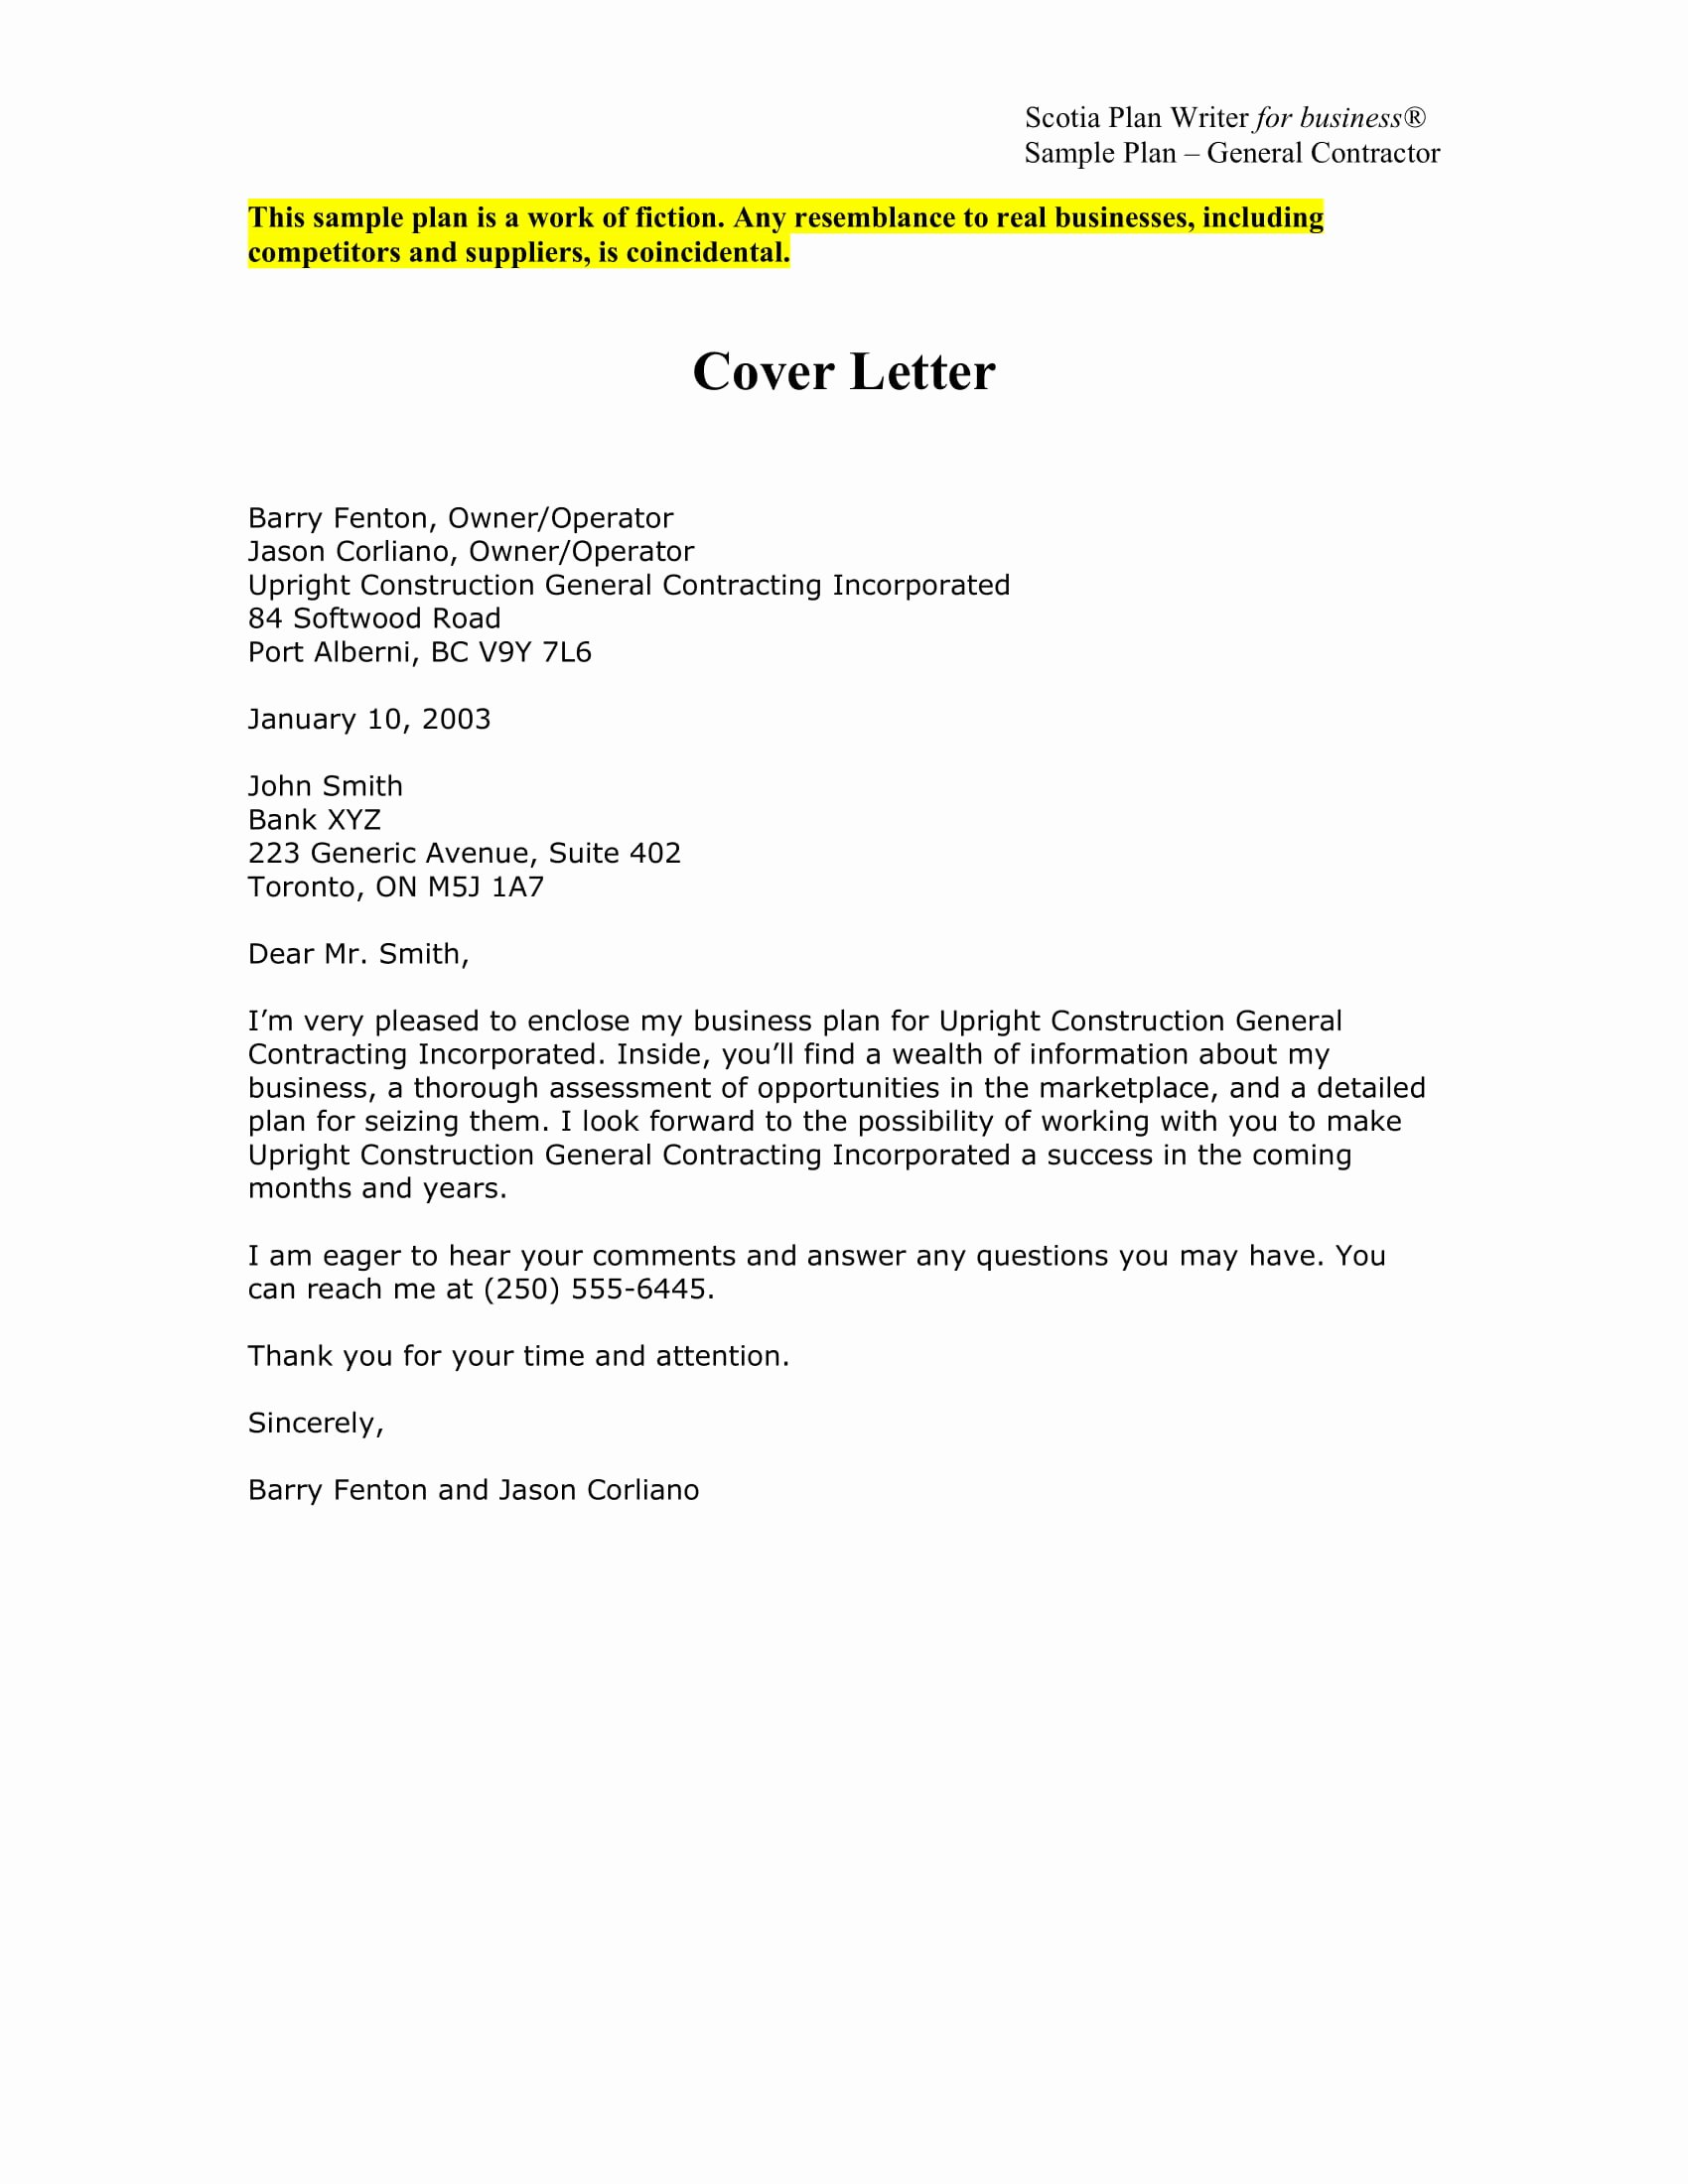 Business Proposal Letter Template Lovely Business Proposal Cover Letter Examples Pdf